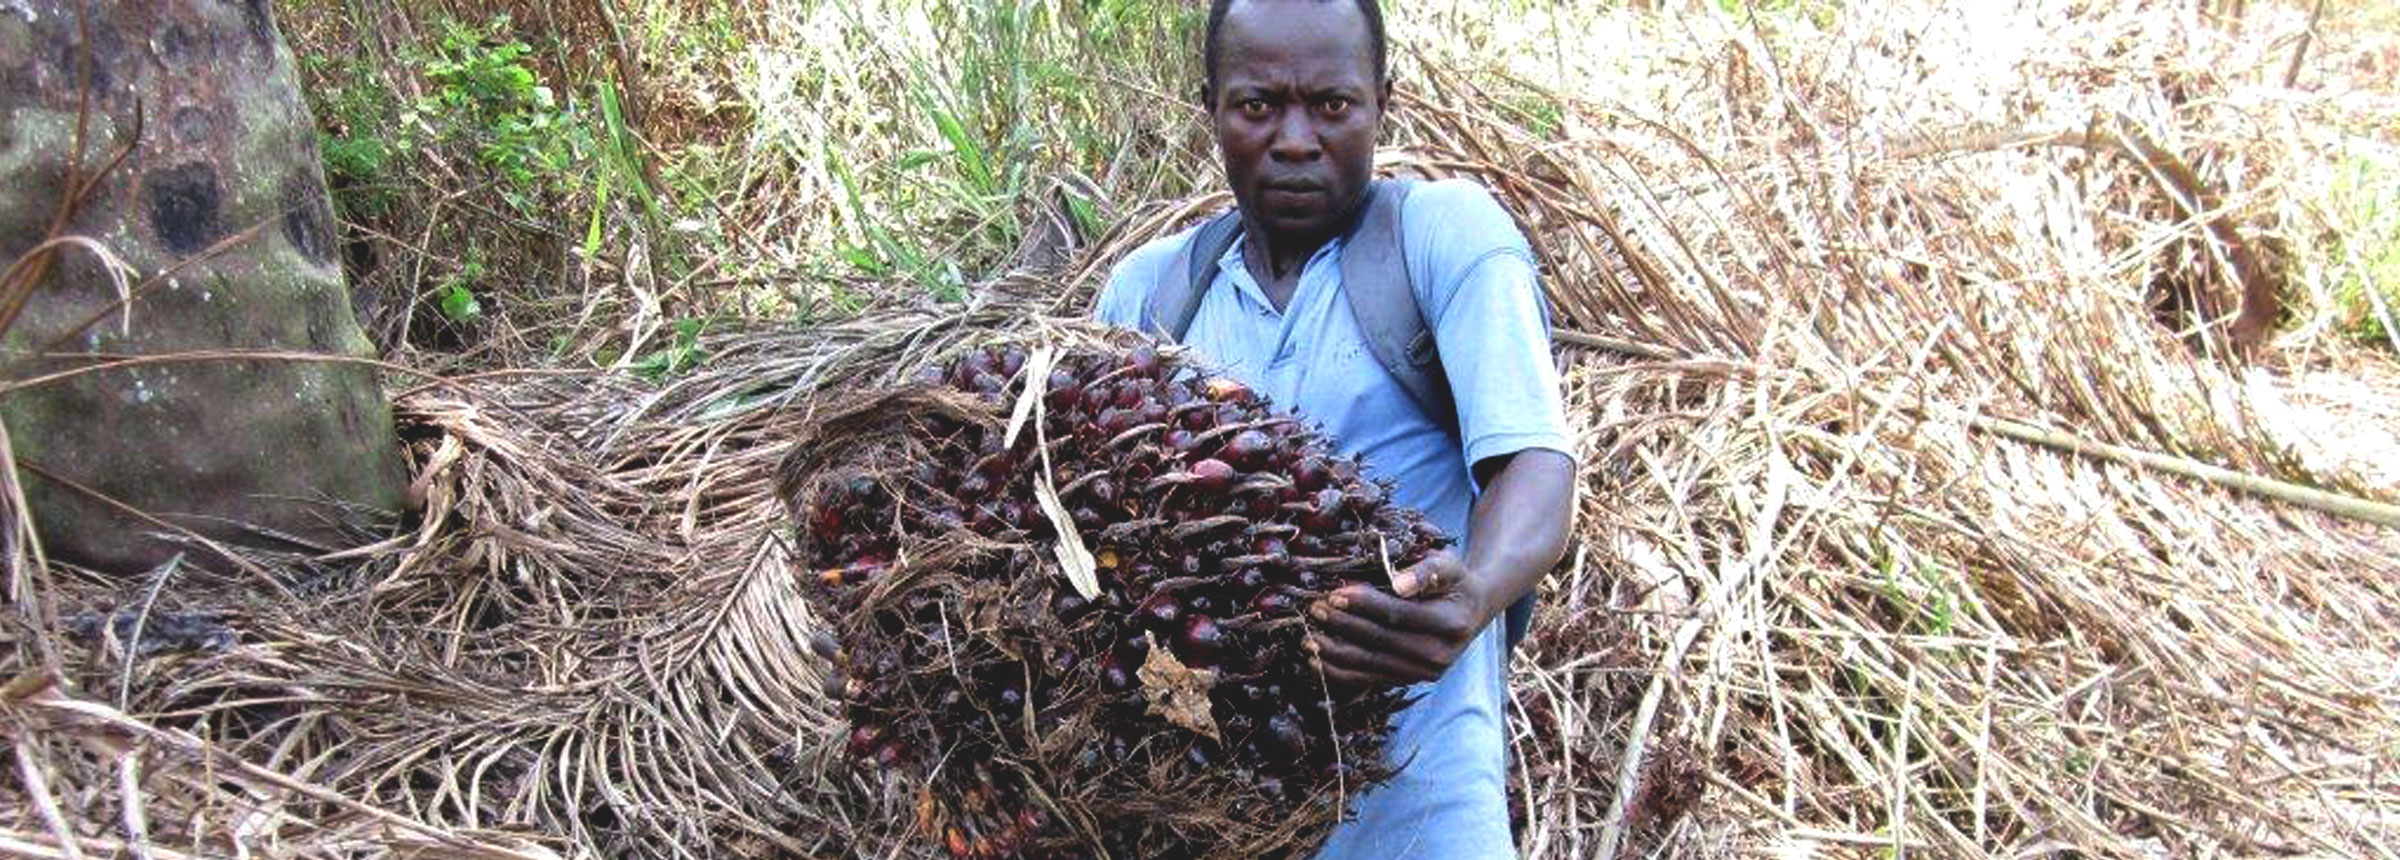 Man harvesting palm oil in Liberia